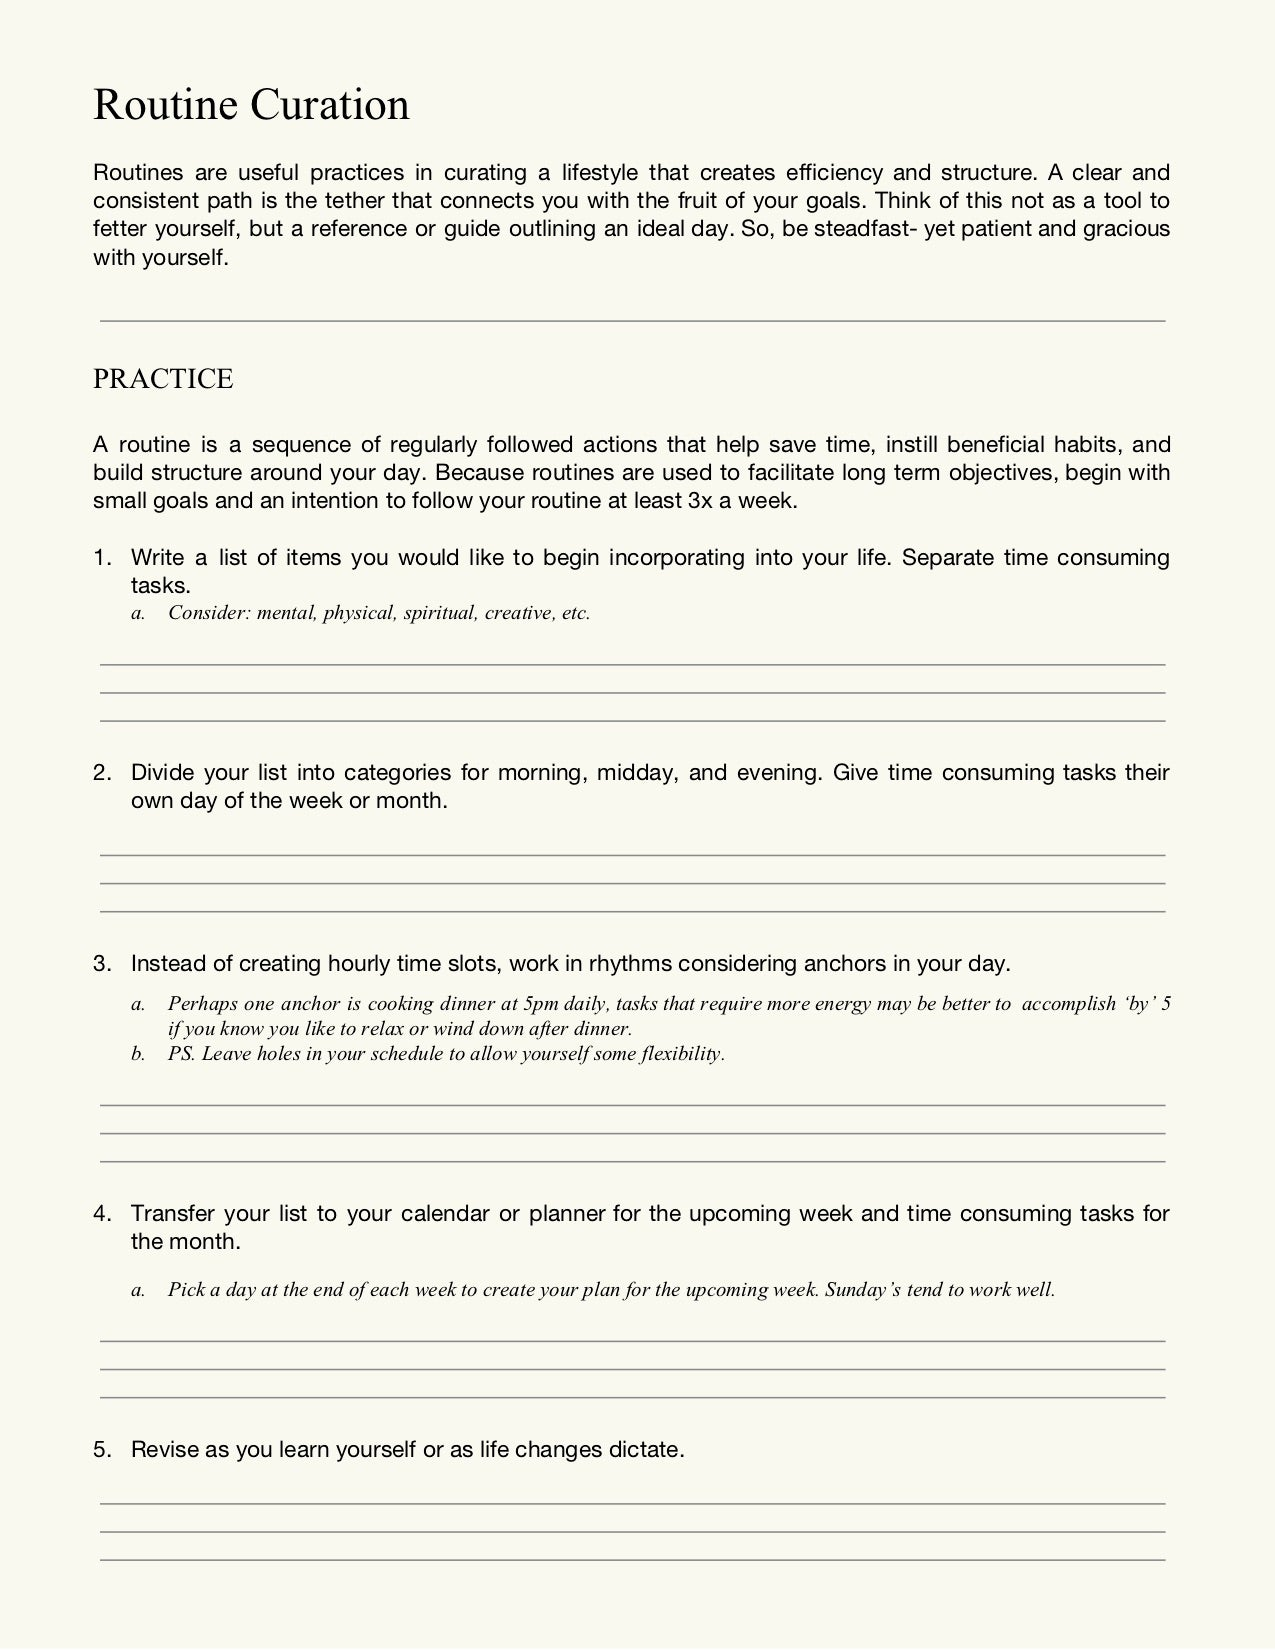 Routine Curation Worksheet